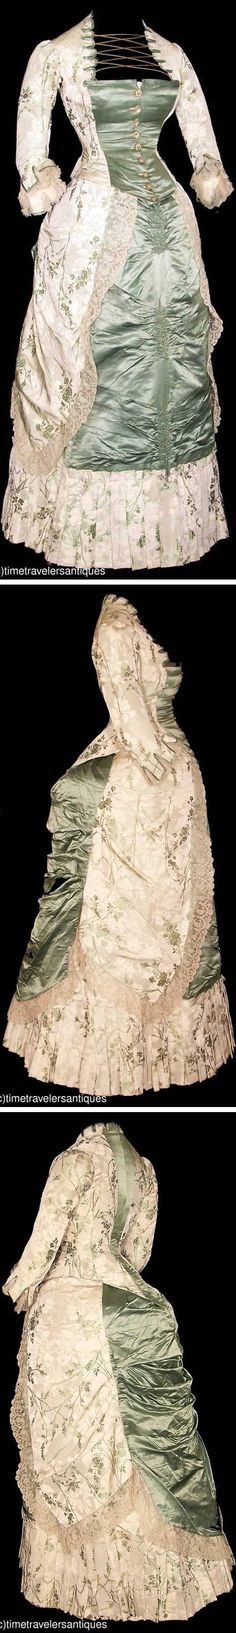 Dress, ca. 1880. Sage green floral silk brocade two-piece bustle gown with fern green accents & moss green silk satin panels. Silk cord laced design criss-crosses decolletage with tab accents that repeat at cuffs, which have pleated silk chiffon inserts. Lined bodice has deep points at hem & decorative floral metal buttons at front closure. Ruched & pleated front panel on skirt; draped bustled back to attached overskirt, trimmed in blonde Chantilly lace. time-travelers/ebay: